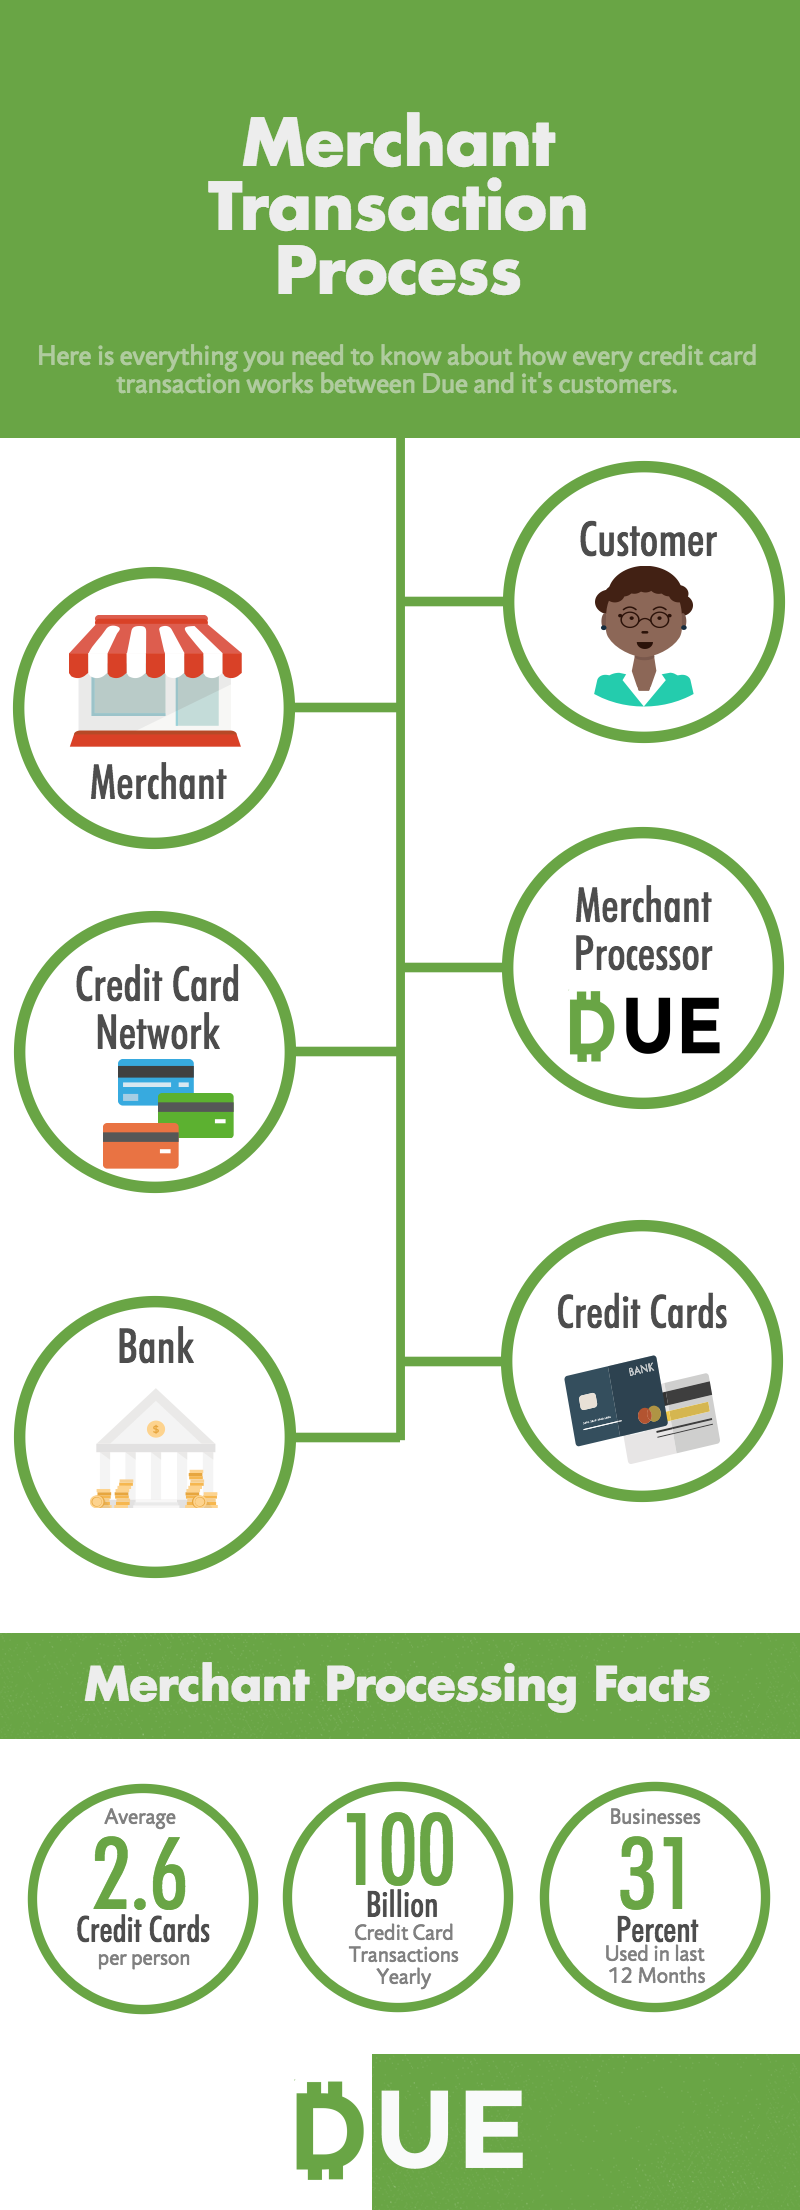 Merchant Transaction Process